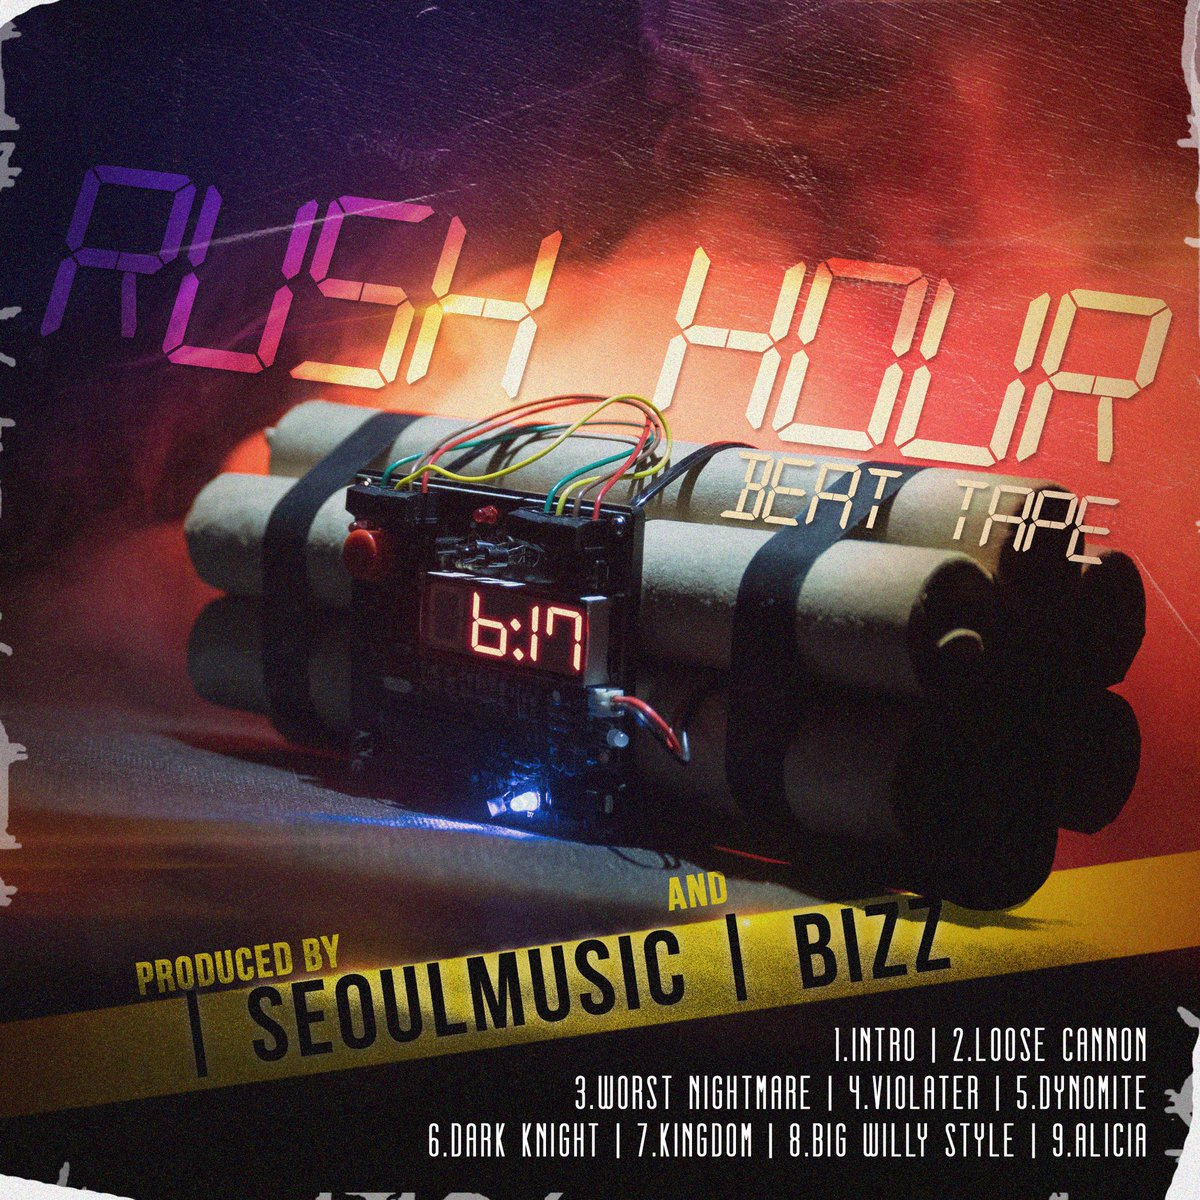 Rush Hour beat tape out now! Link in bio!  Cover art by @DeeLoopz  #beattape #rushhour #boston #ListenToThis #NewMusic #producer #producerlife #Flstudio #studiolife #Rappers #nyc #beatmaker #coverart #promotion #dopemusic #dopebeats #pressplaypic.twitter.com/Rgb7Pv2osm